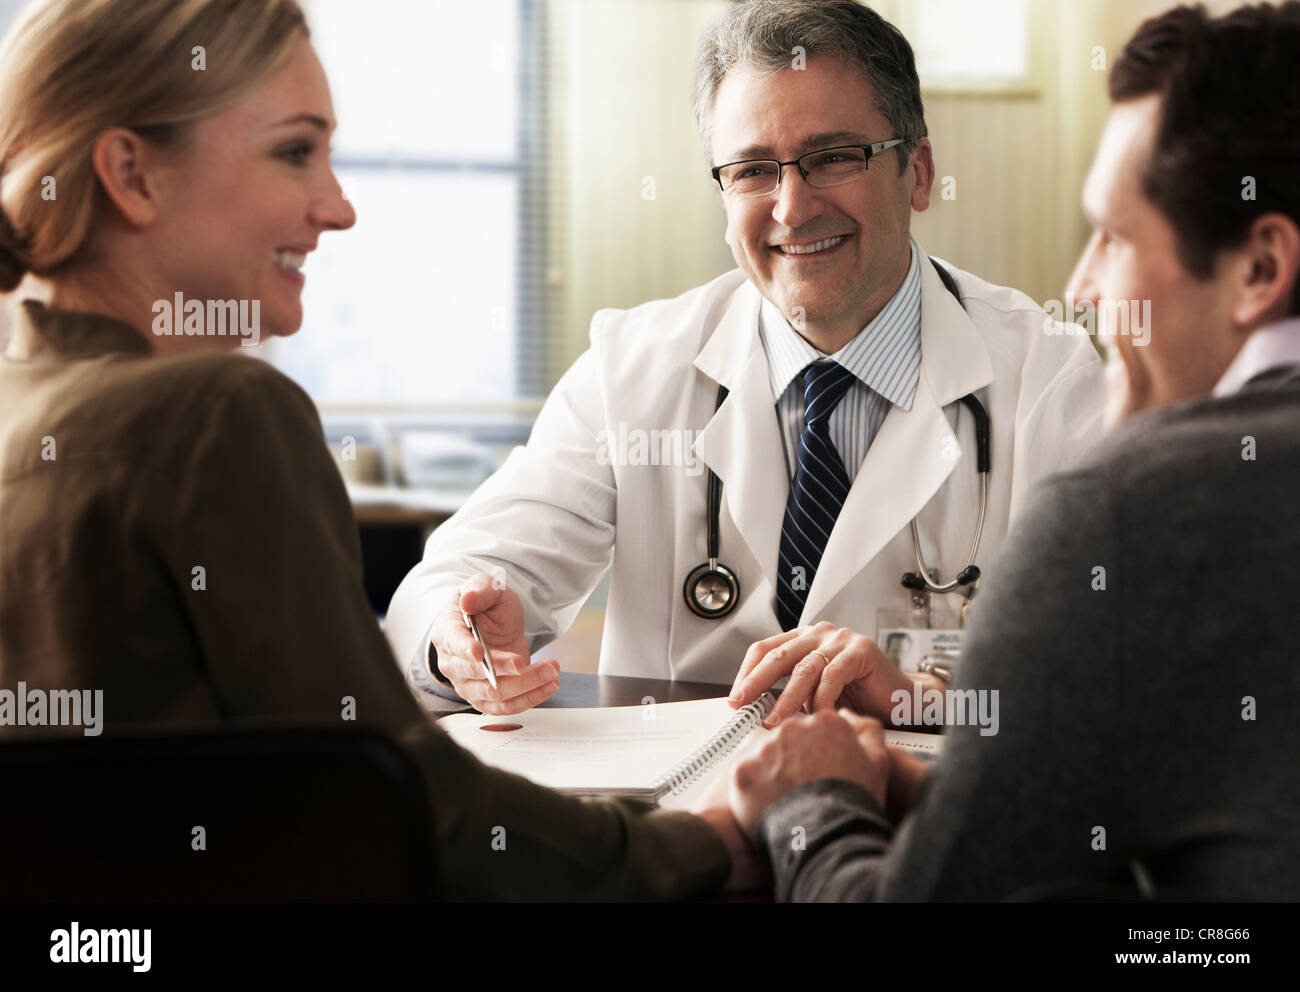 Young couple in doctor's office receiving good news - Stock Image